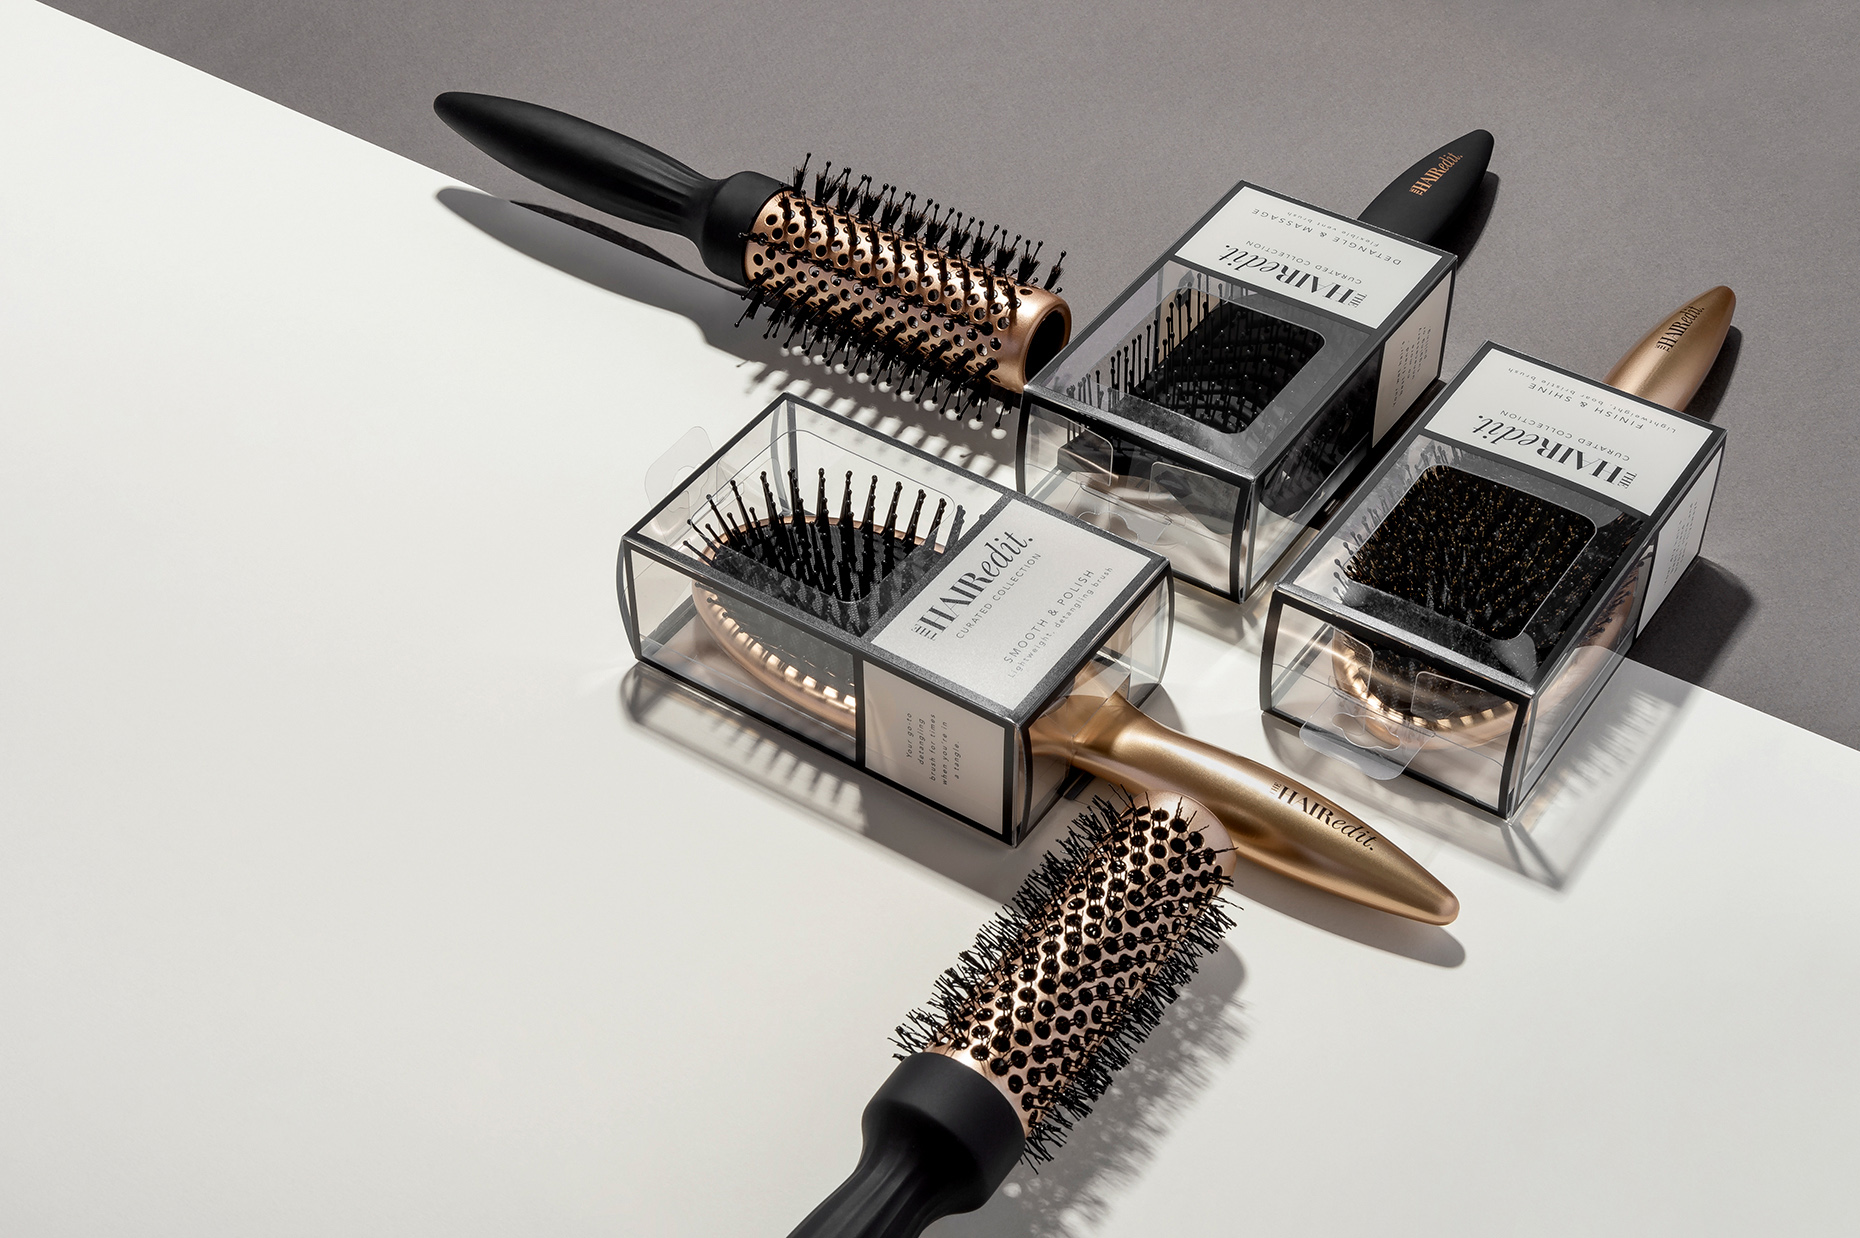 Fromm Hair Care Products, Brushes, combs, Advertising imagery